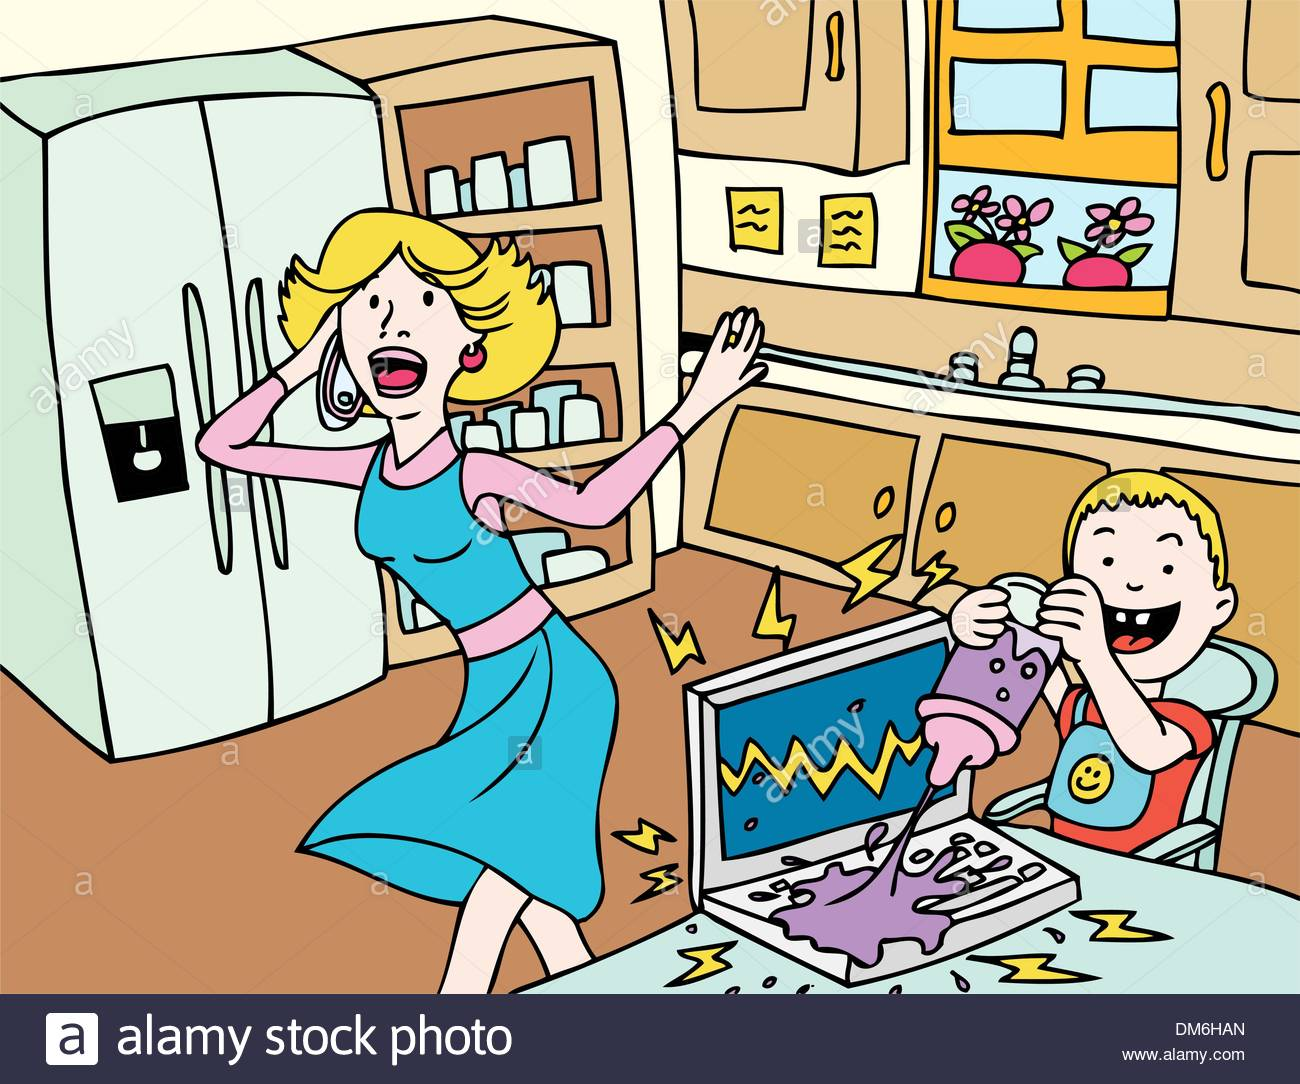 Bad Day for Mommy - Stock Vector